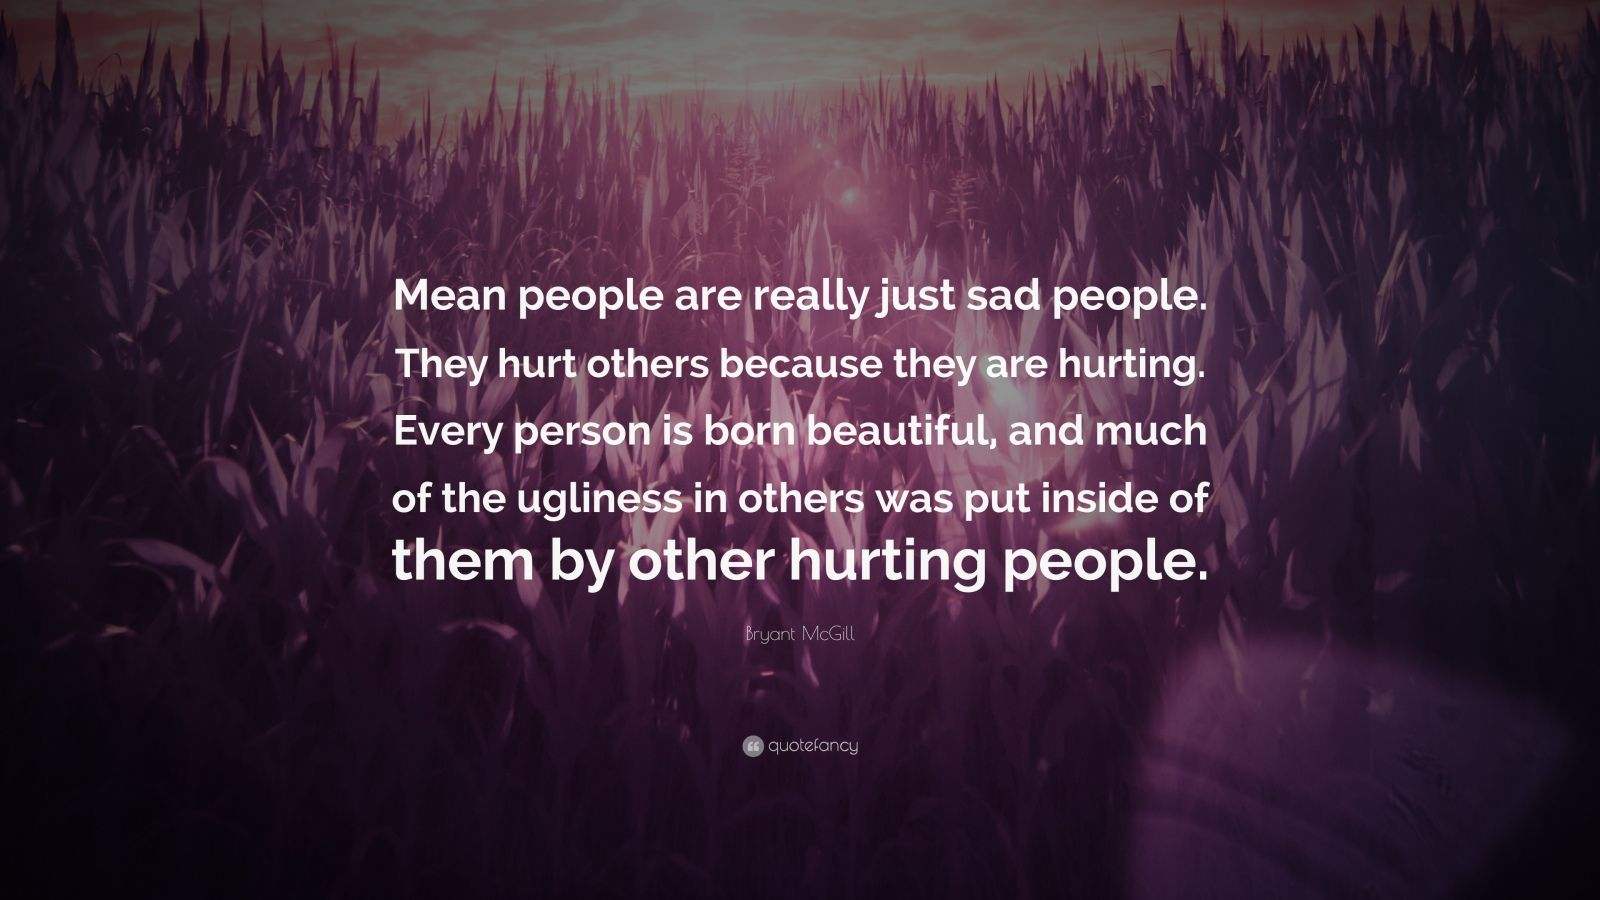 Bryant McGill Quote: Mean people are really just sad